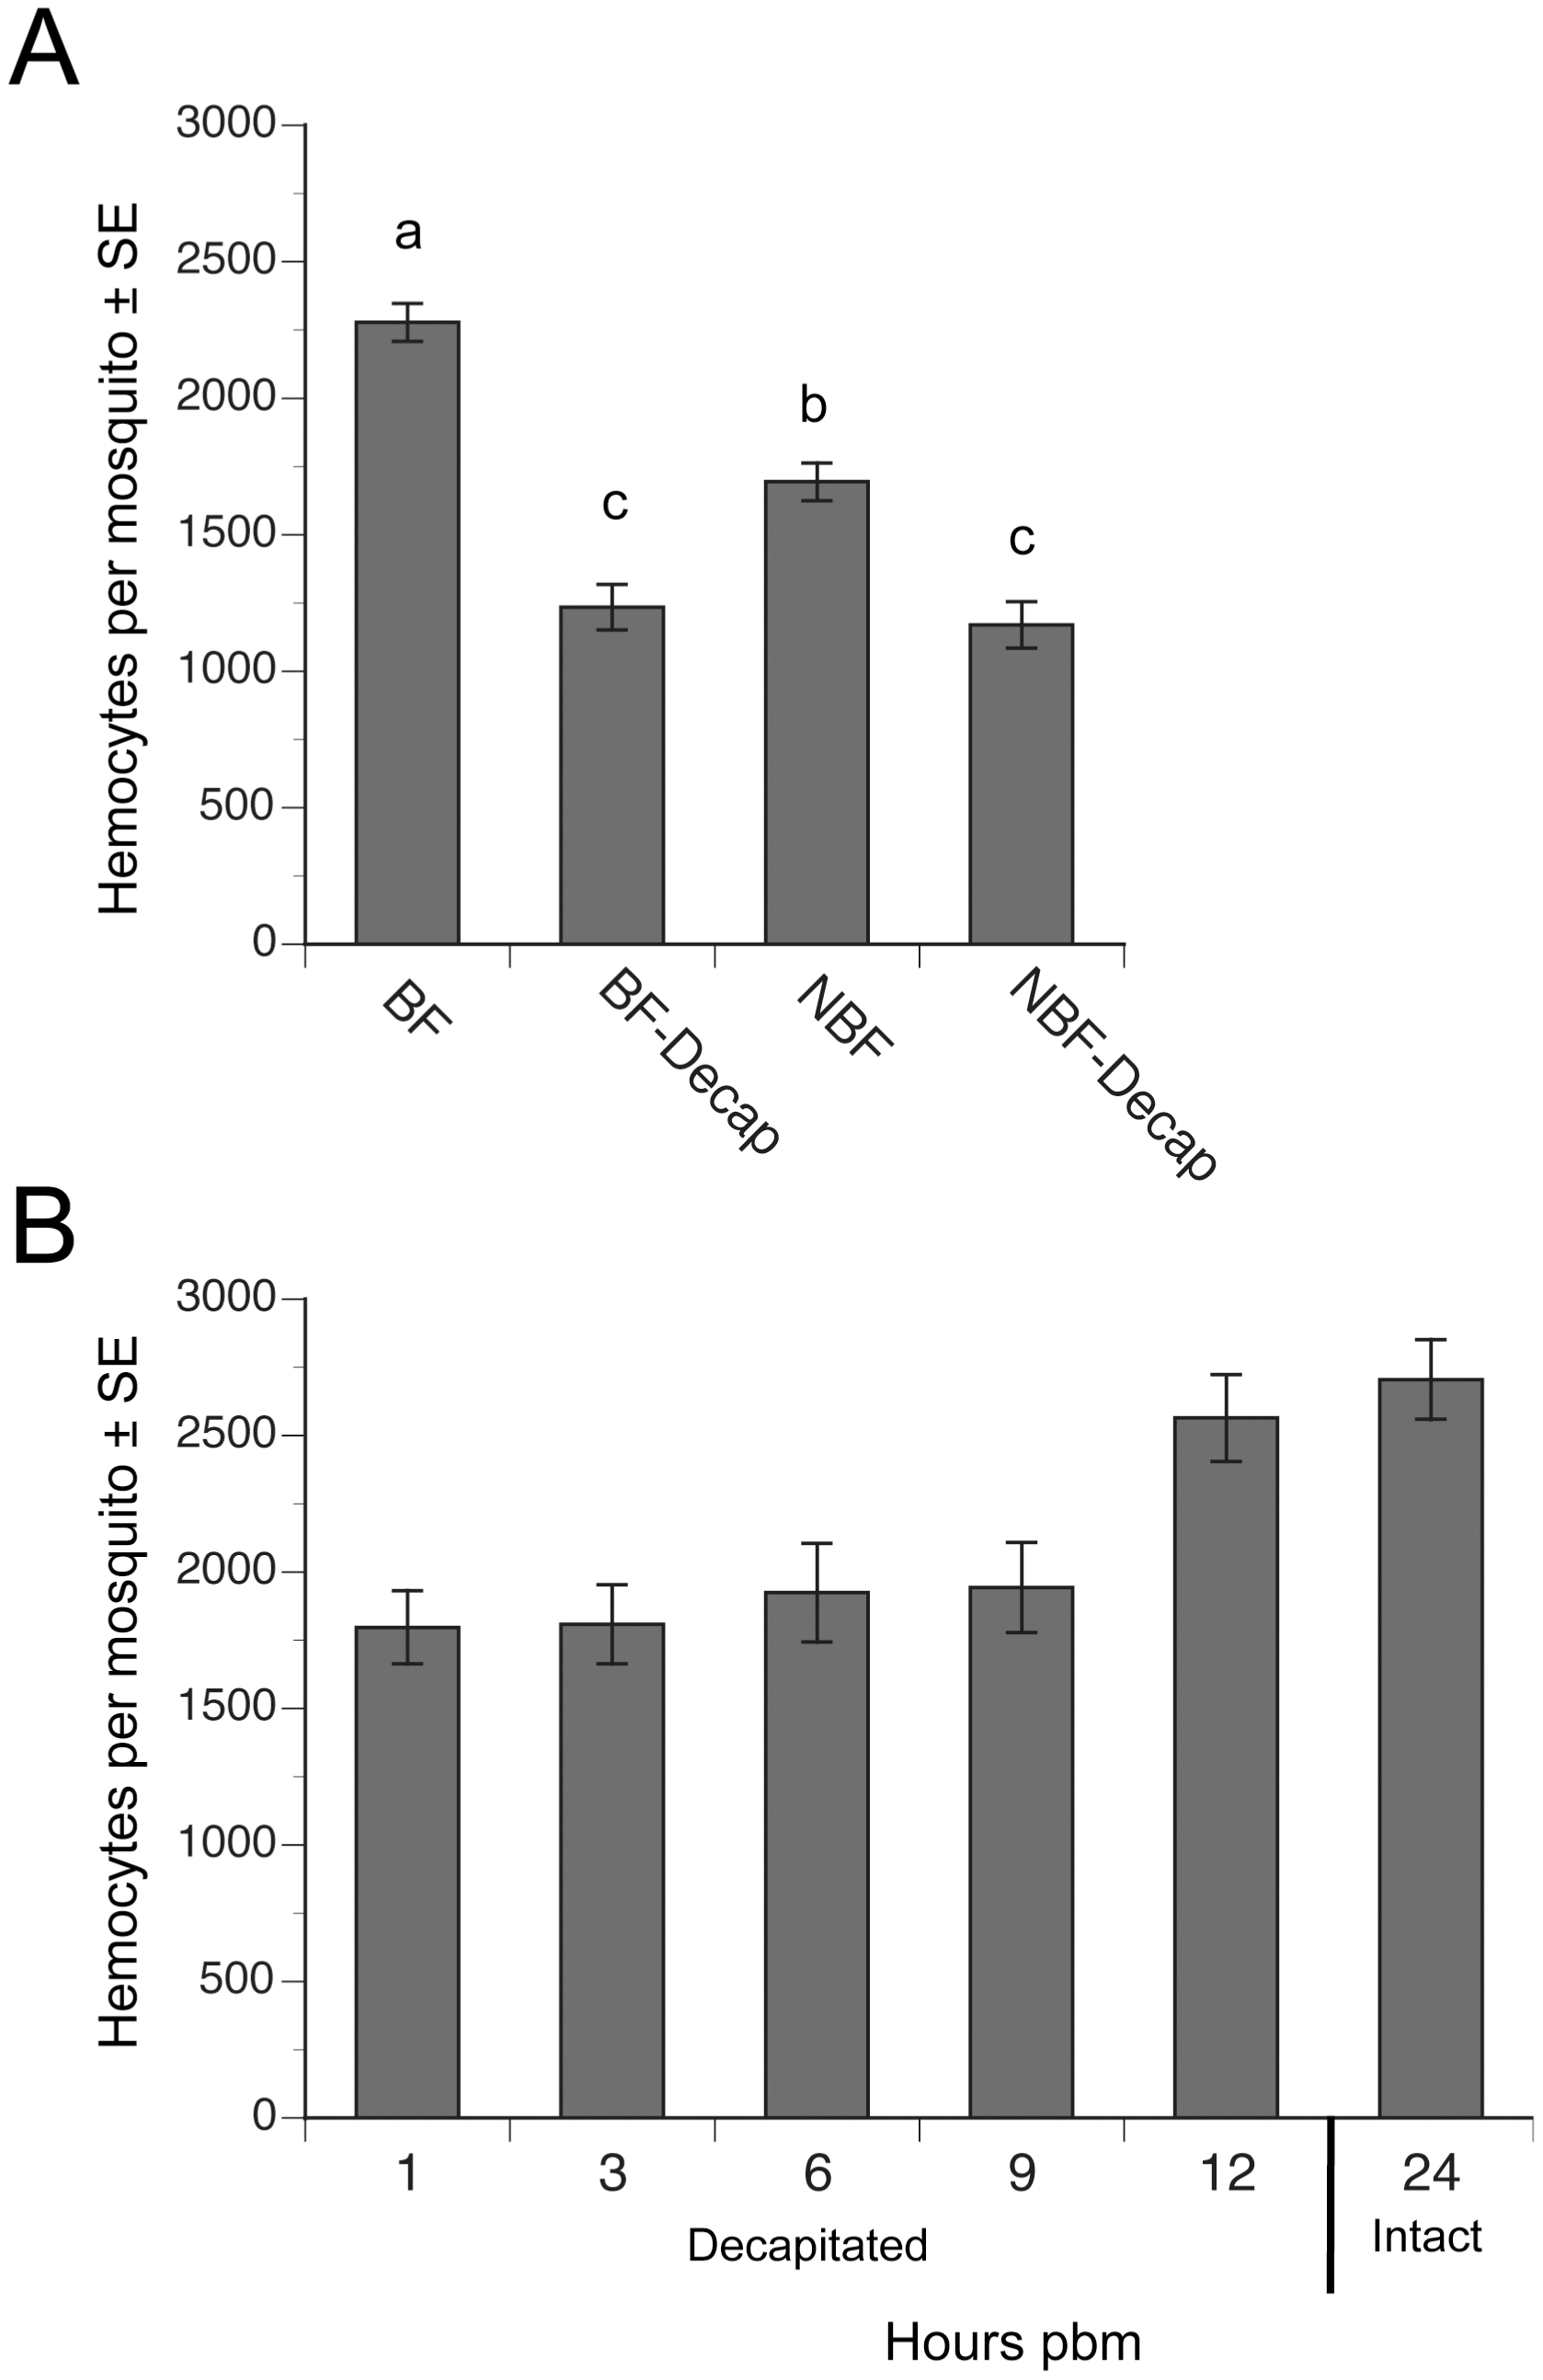 Decapitation inhibits the increase in hemocyte abundance that occurs after blood feeding.